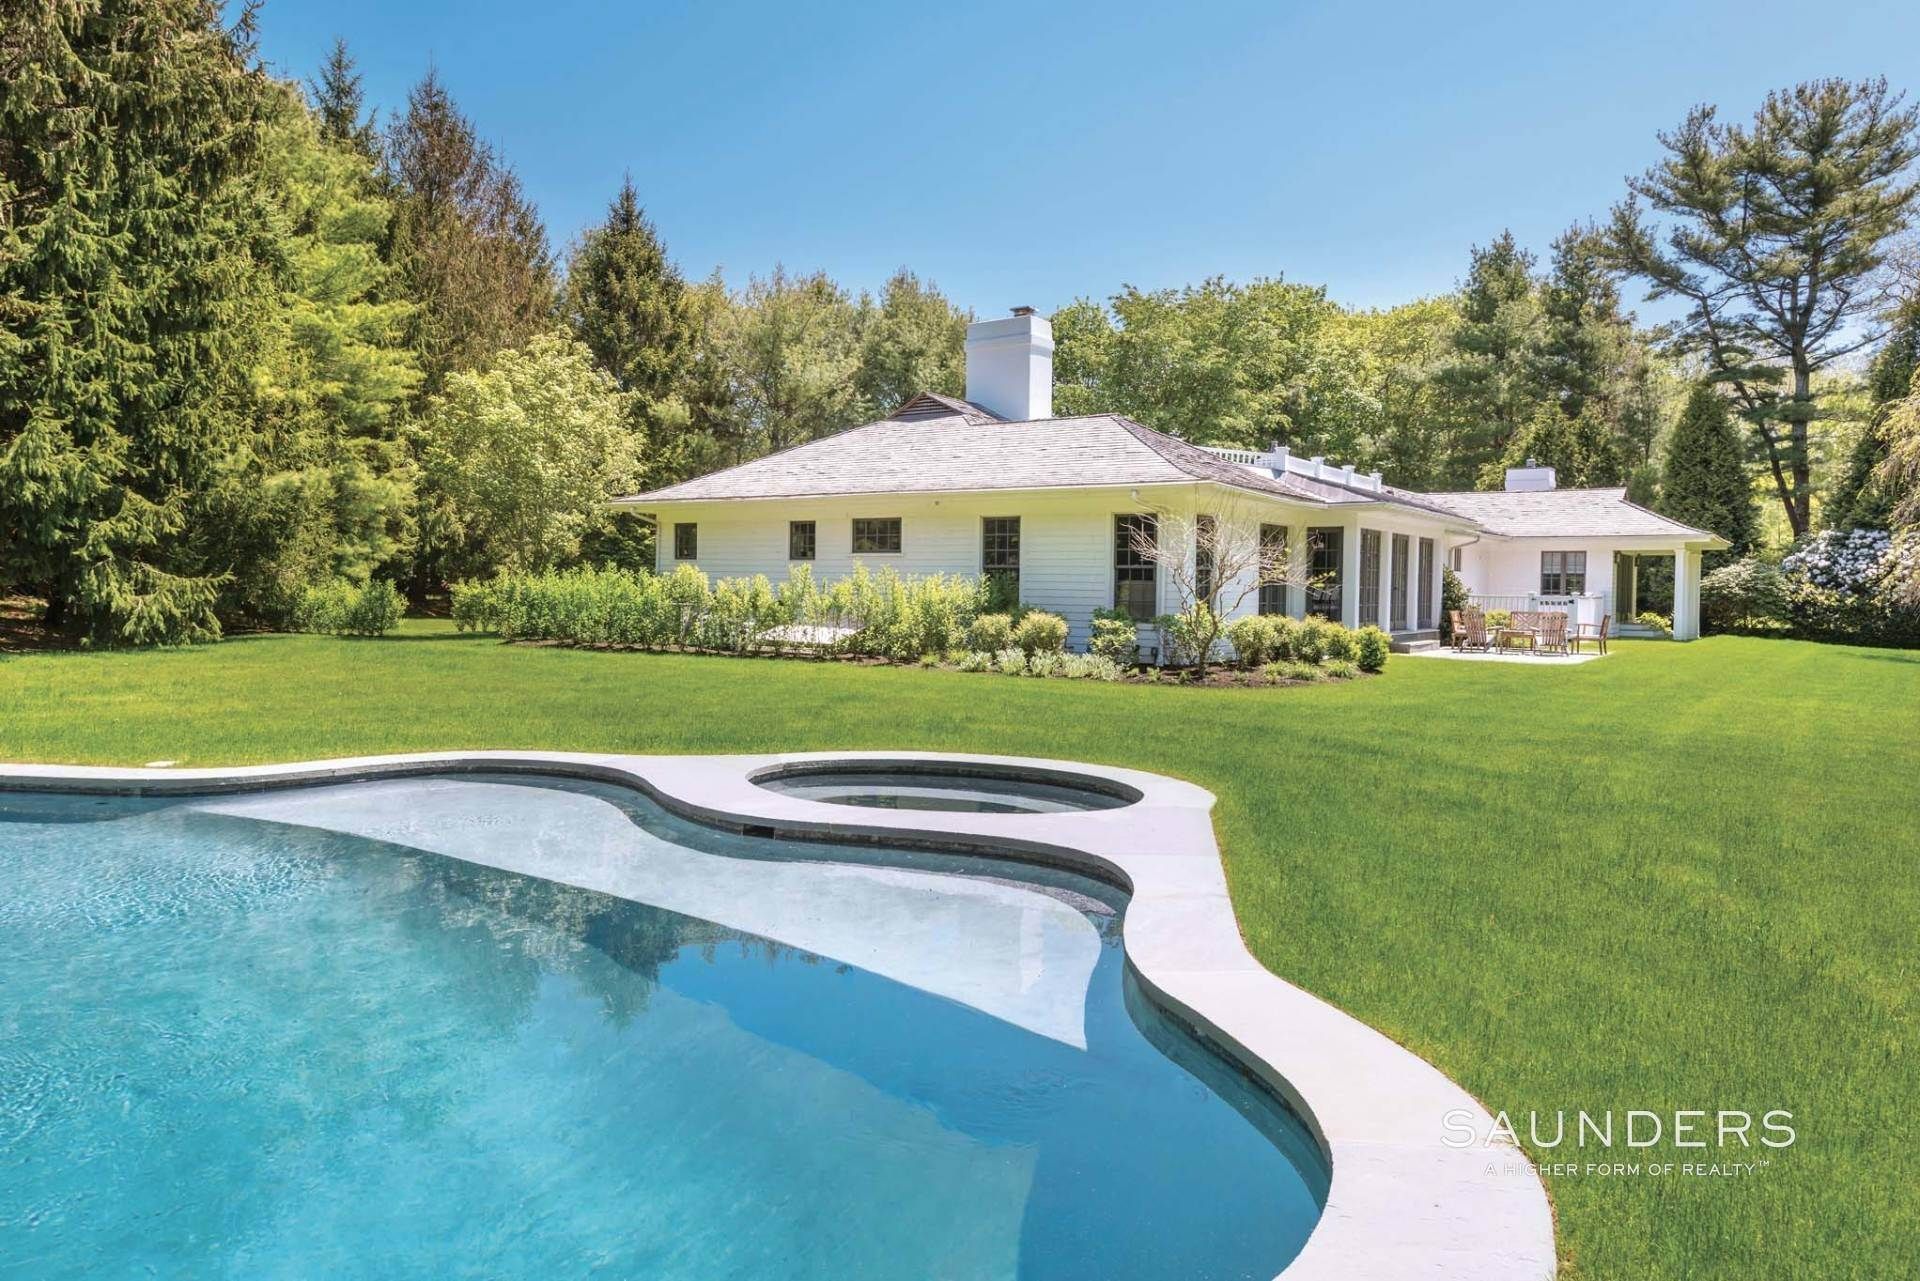 2. Single Family Homes for Sale at East Hampton Village 4 Carriage Court, East Hampton, East Hampton Town, NY 11937